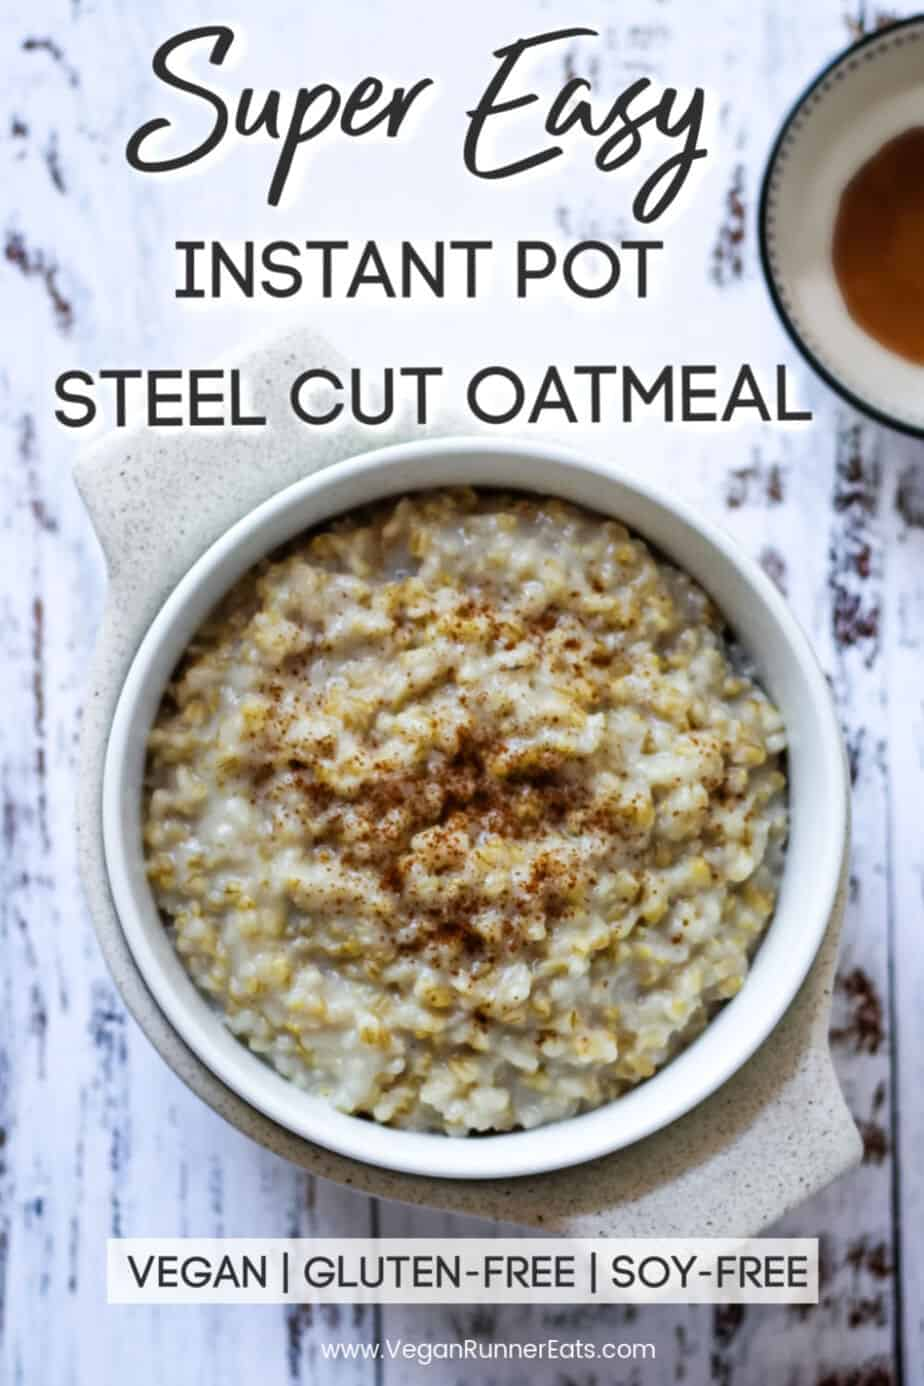 Super easy Instant Pot steel cut oatmeal - 2 easy ways to make perfect steel cut oats in the Instant Pot | Vegan Runner Eats